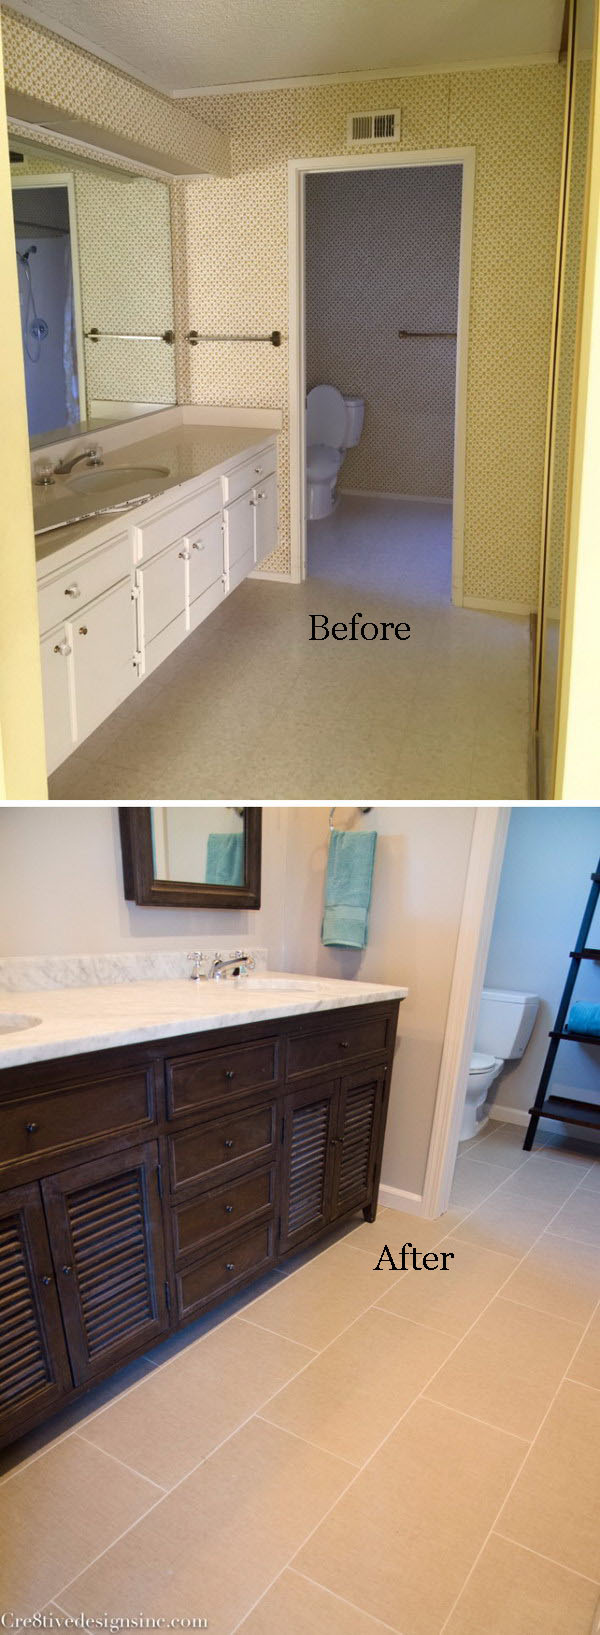 49-50-bathroom-remodel-before-and-after